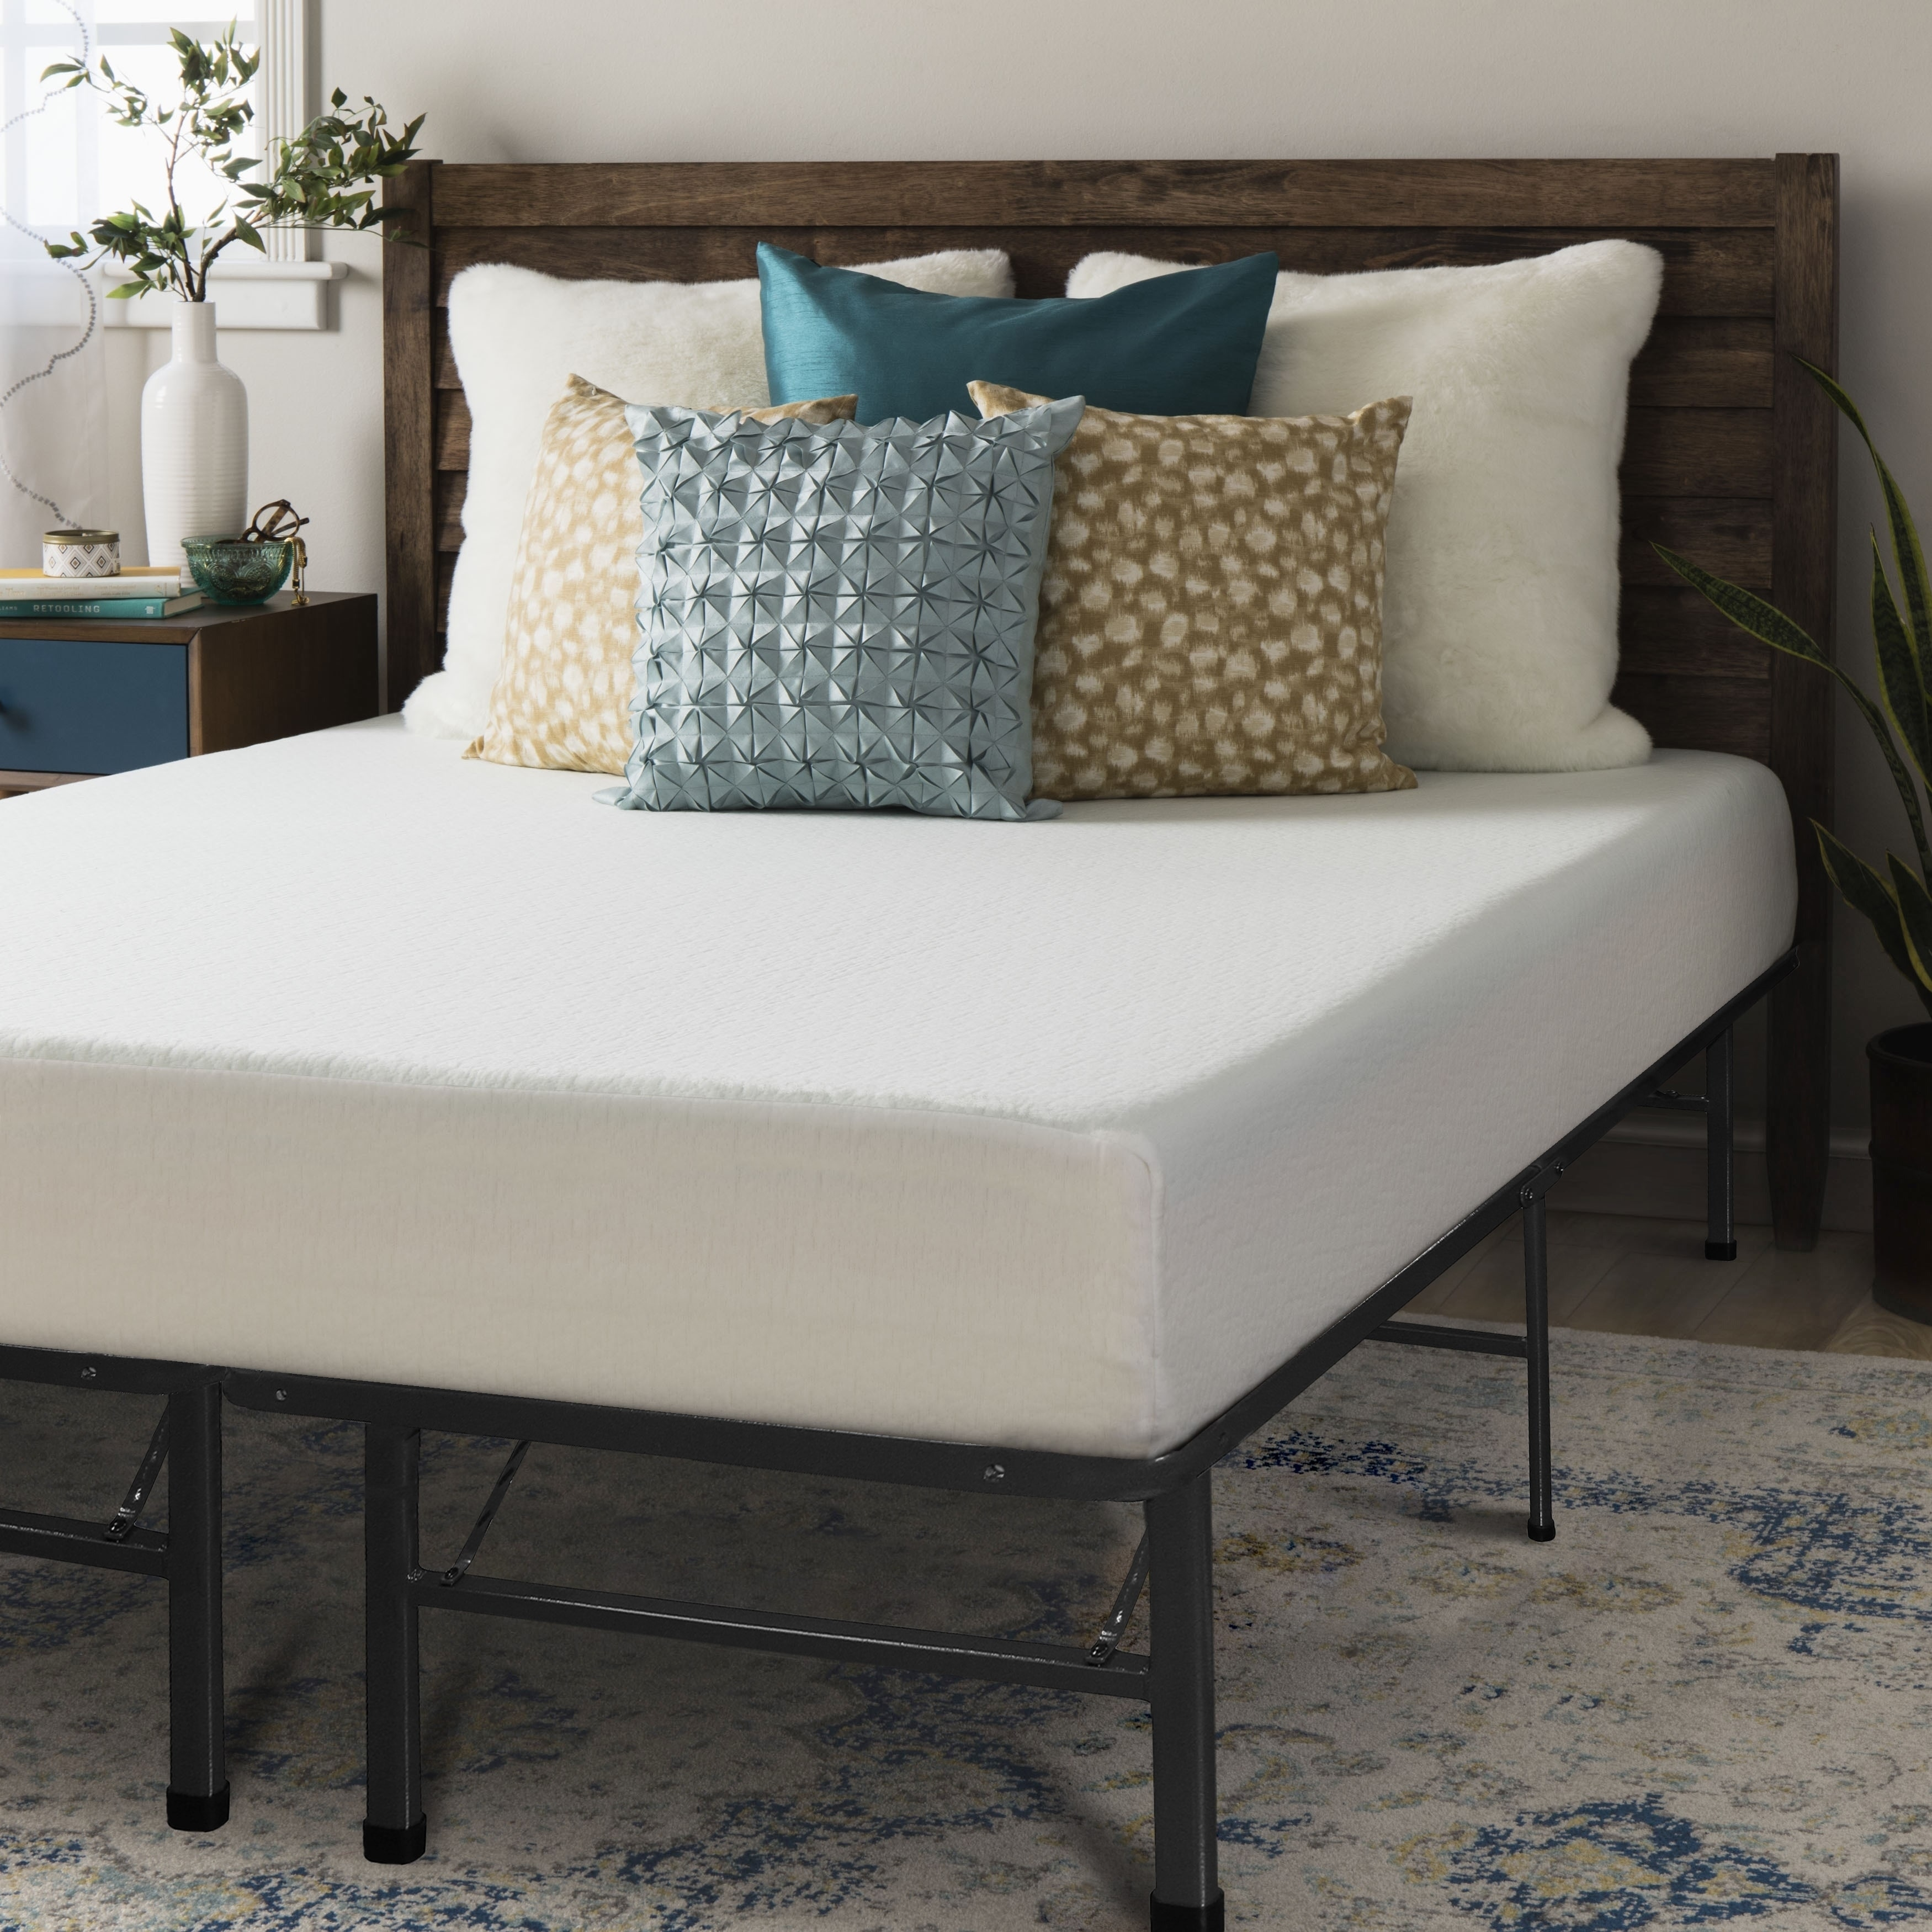 Shop Crown Comfort 8 Inch Memory Foam Mattress With Bed Frame Set